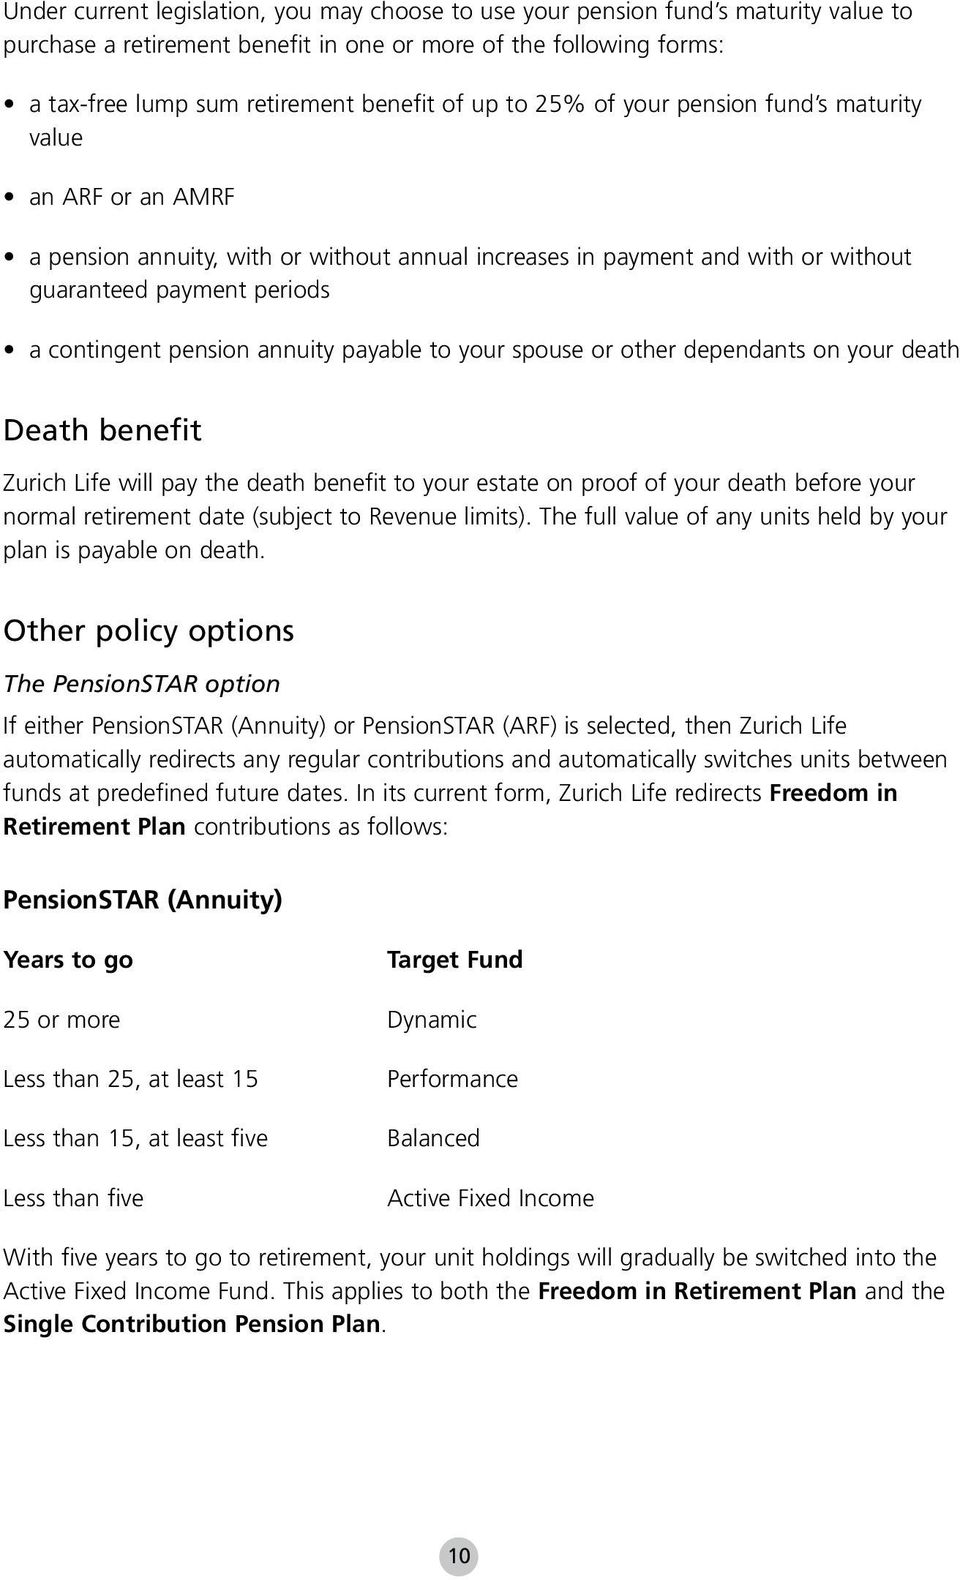 annuity payable to your spouse or other dependants on your death Death benefit Zurich Life will pay the death benefit to your estate on proof of your death before your normal retirement date (subject